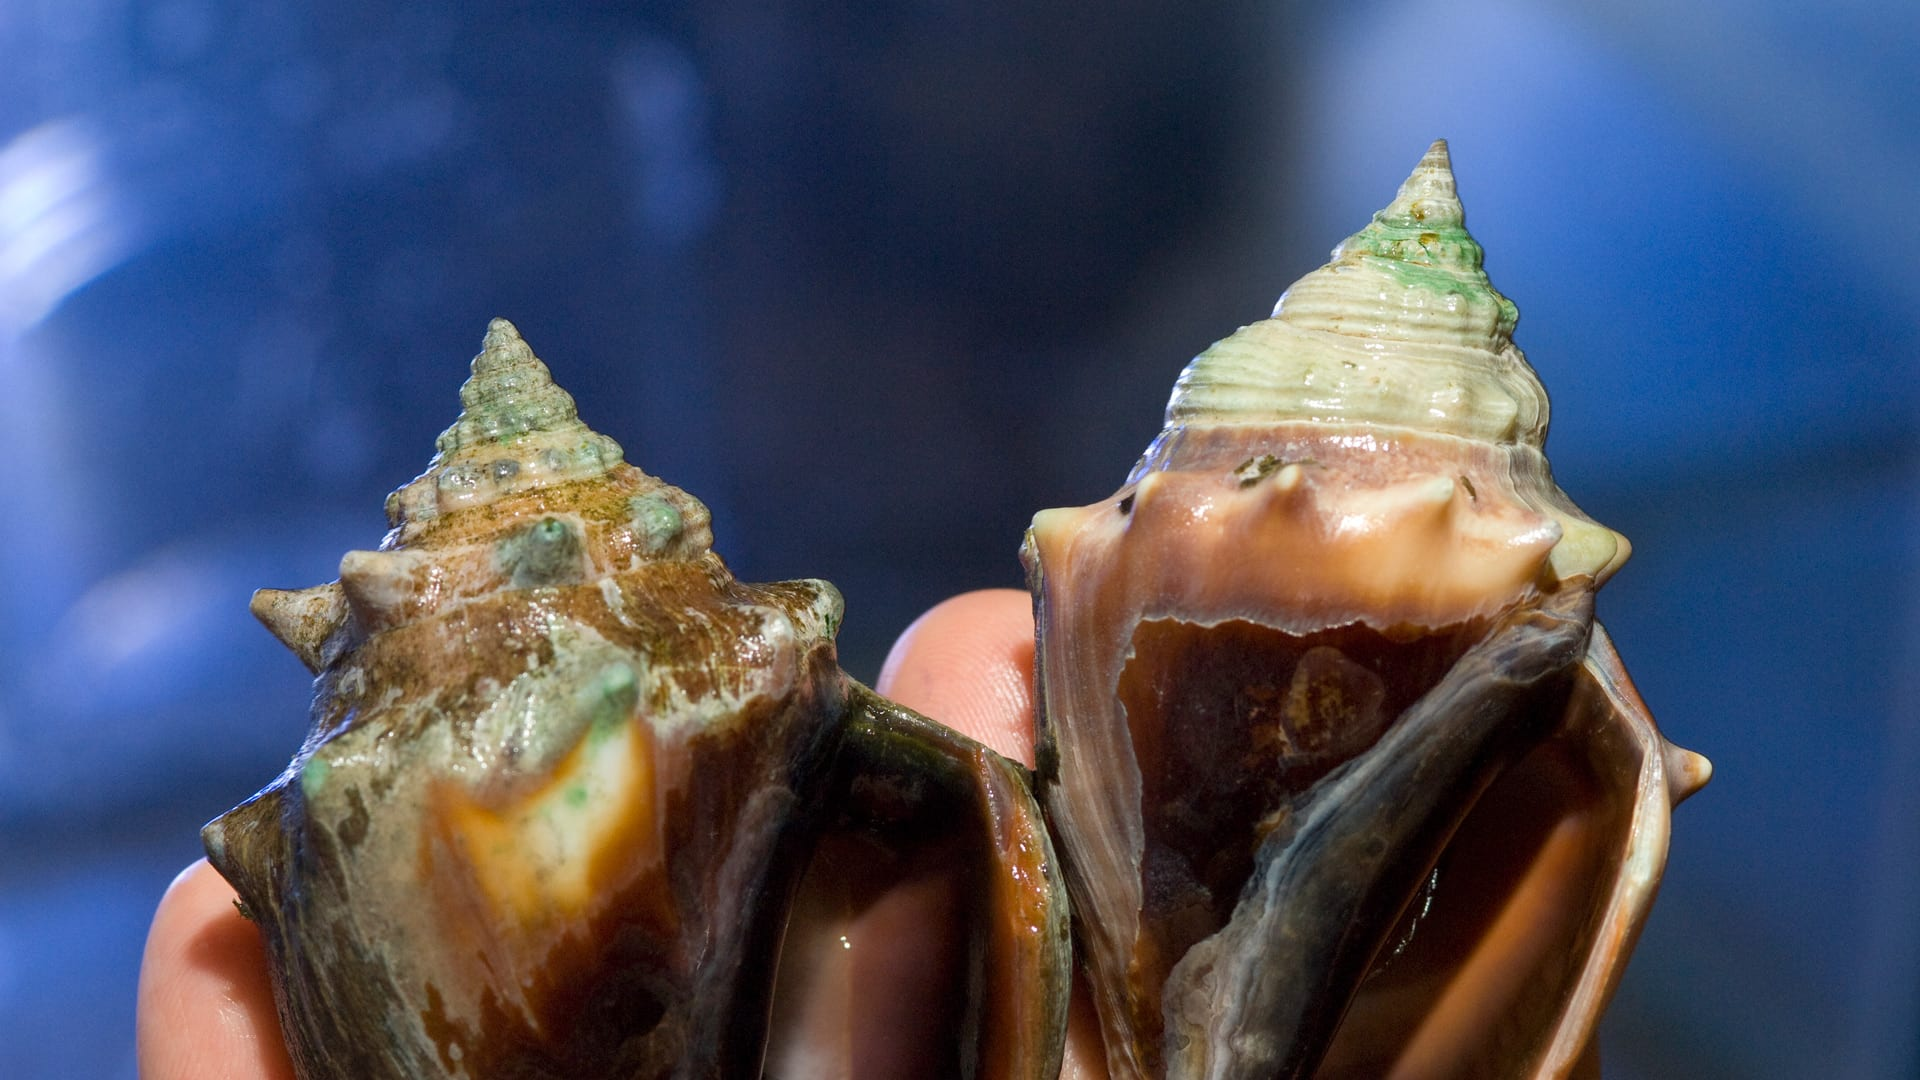 Scientists are investigating how higher CO2 levels in sea water effects animals' abilities to create shells. Here, conchs (Strombus alatus), deteriorated (left), but surprisingly, some thrived. Photo by Tom Kleindinst © Woods Hole Oceanographic Institution